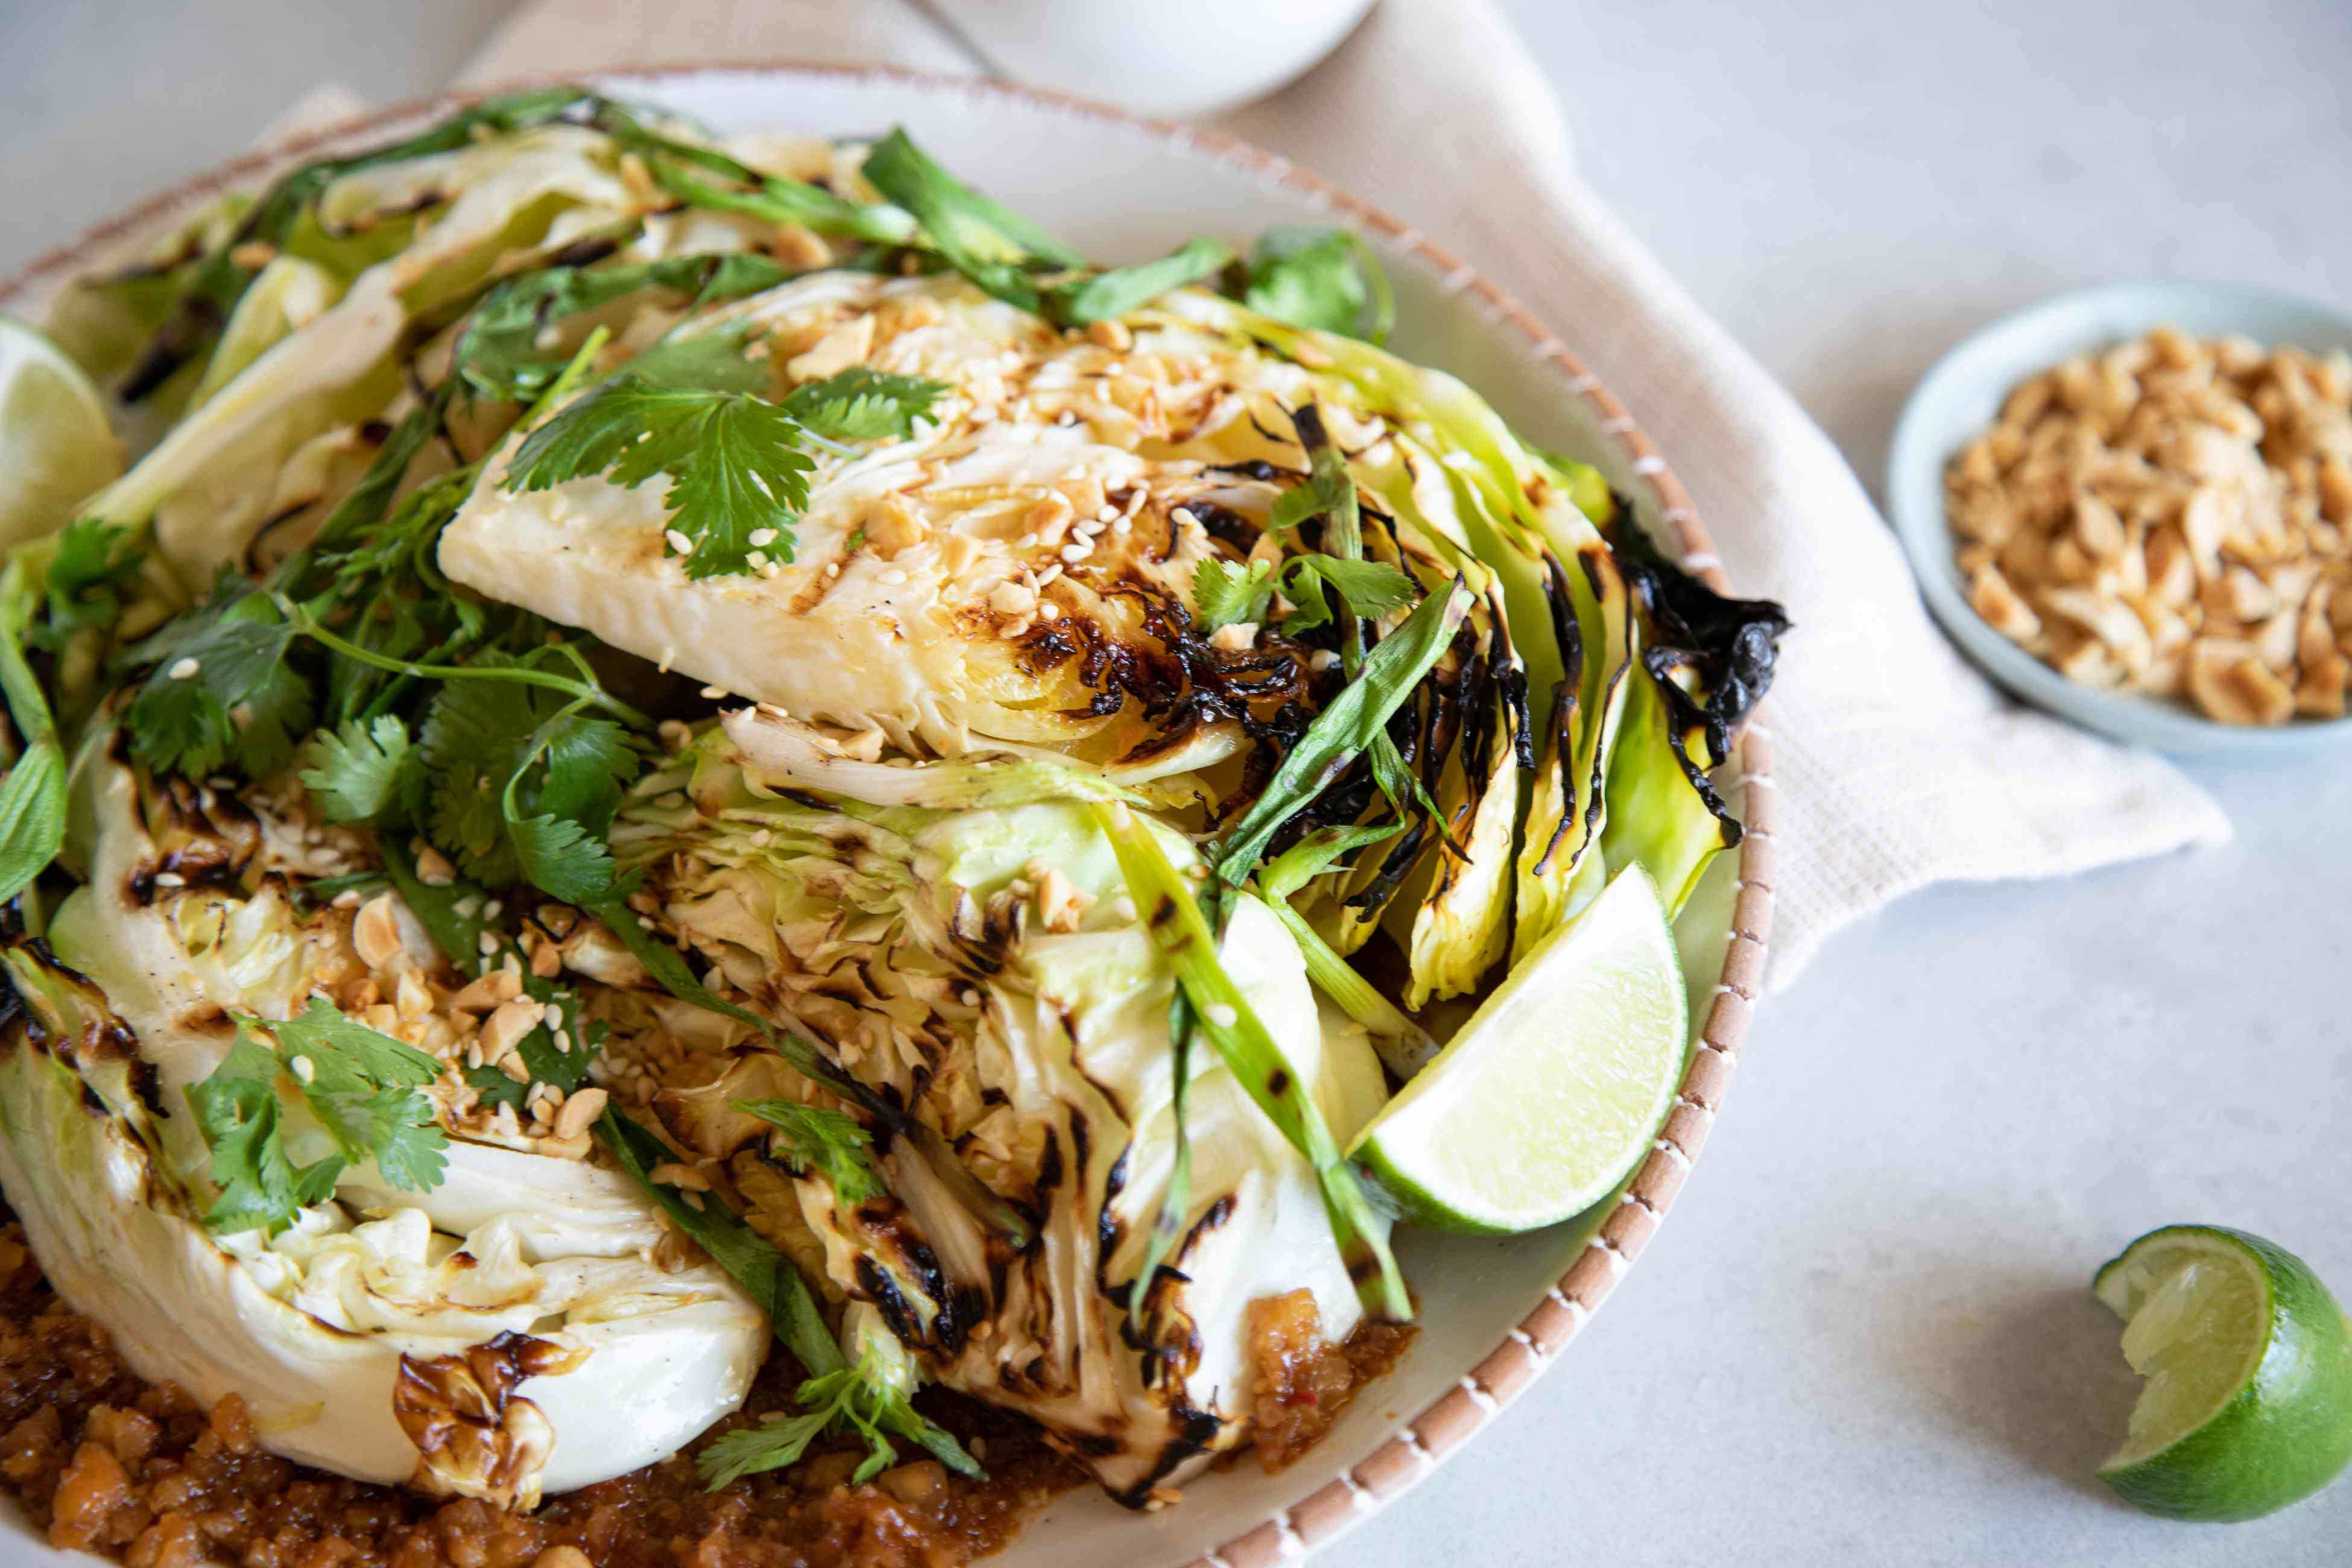 Side view of Grilled cabbage wedges with peanut sauce.